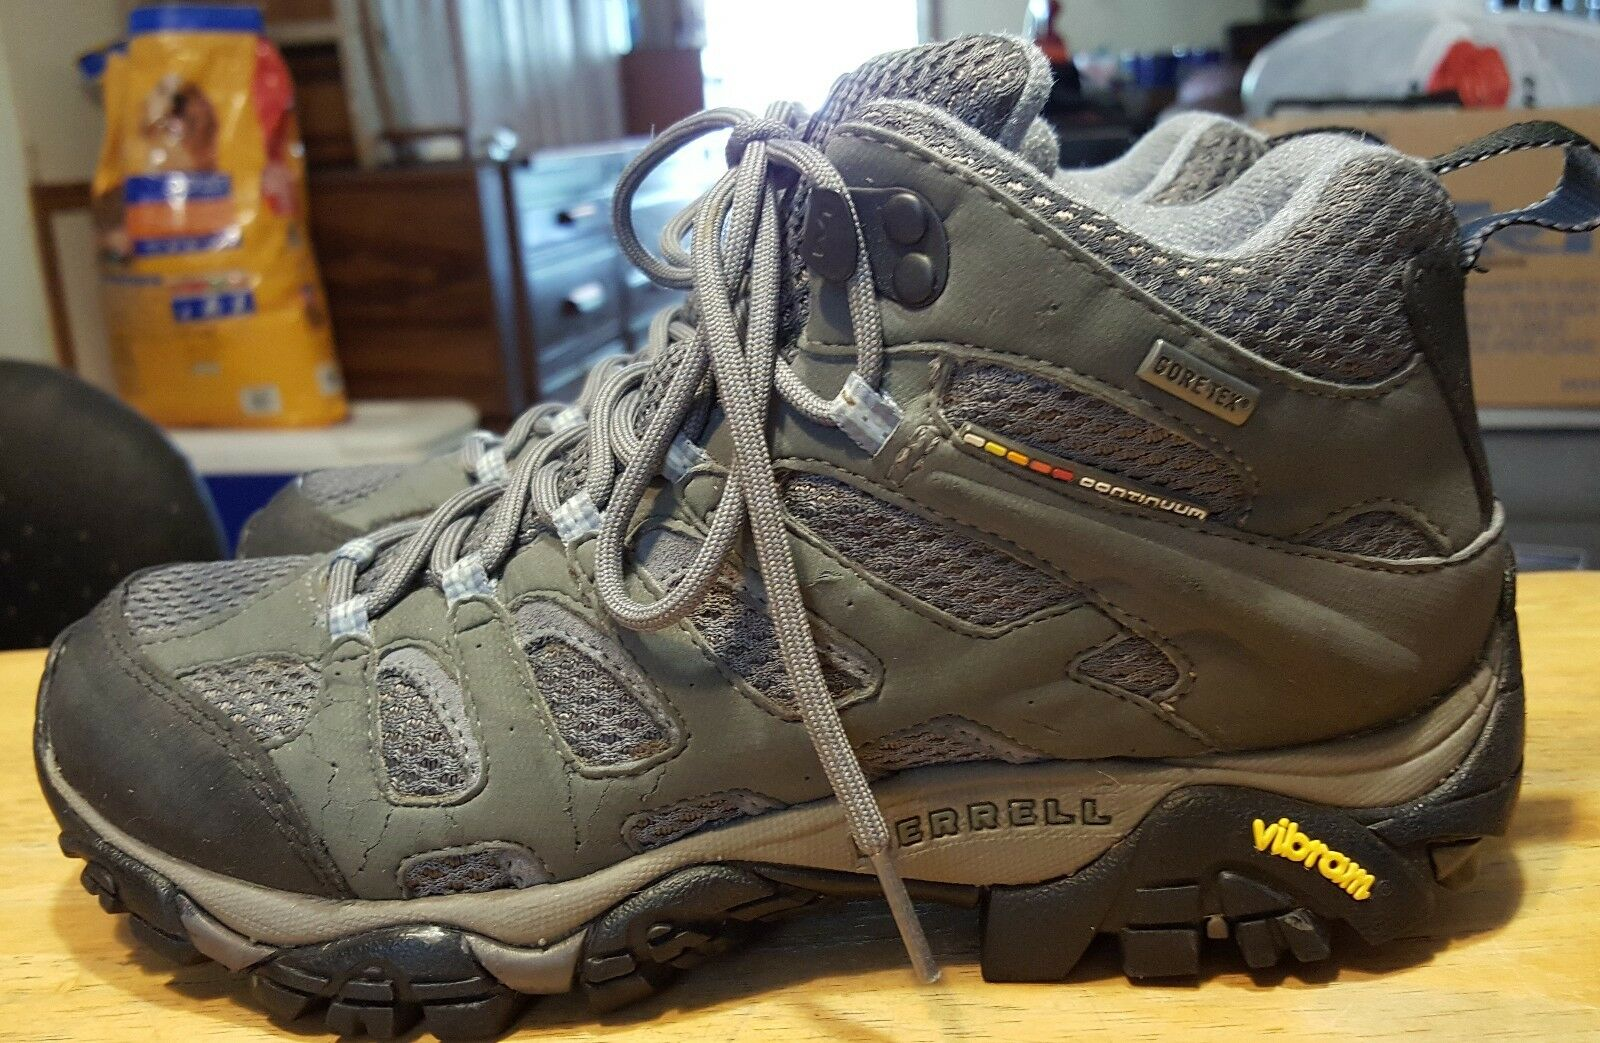 Merrell moab hiking trail boots gray size 6 1/2 leather with laces (euro 37)